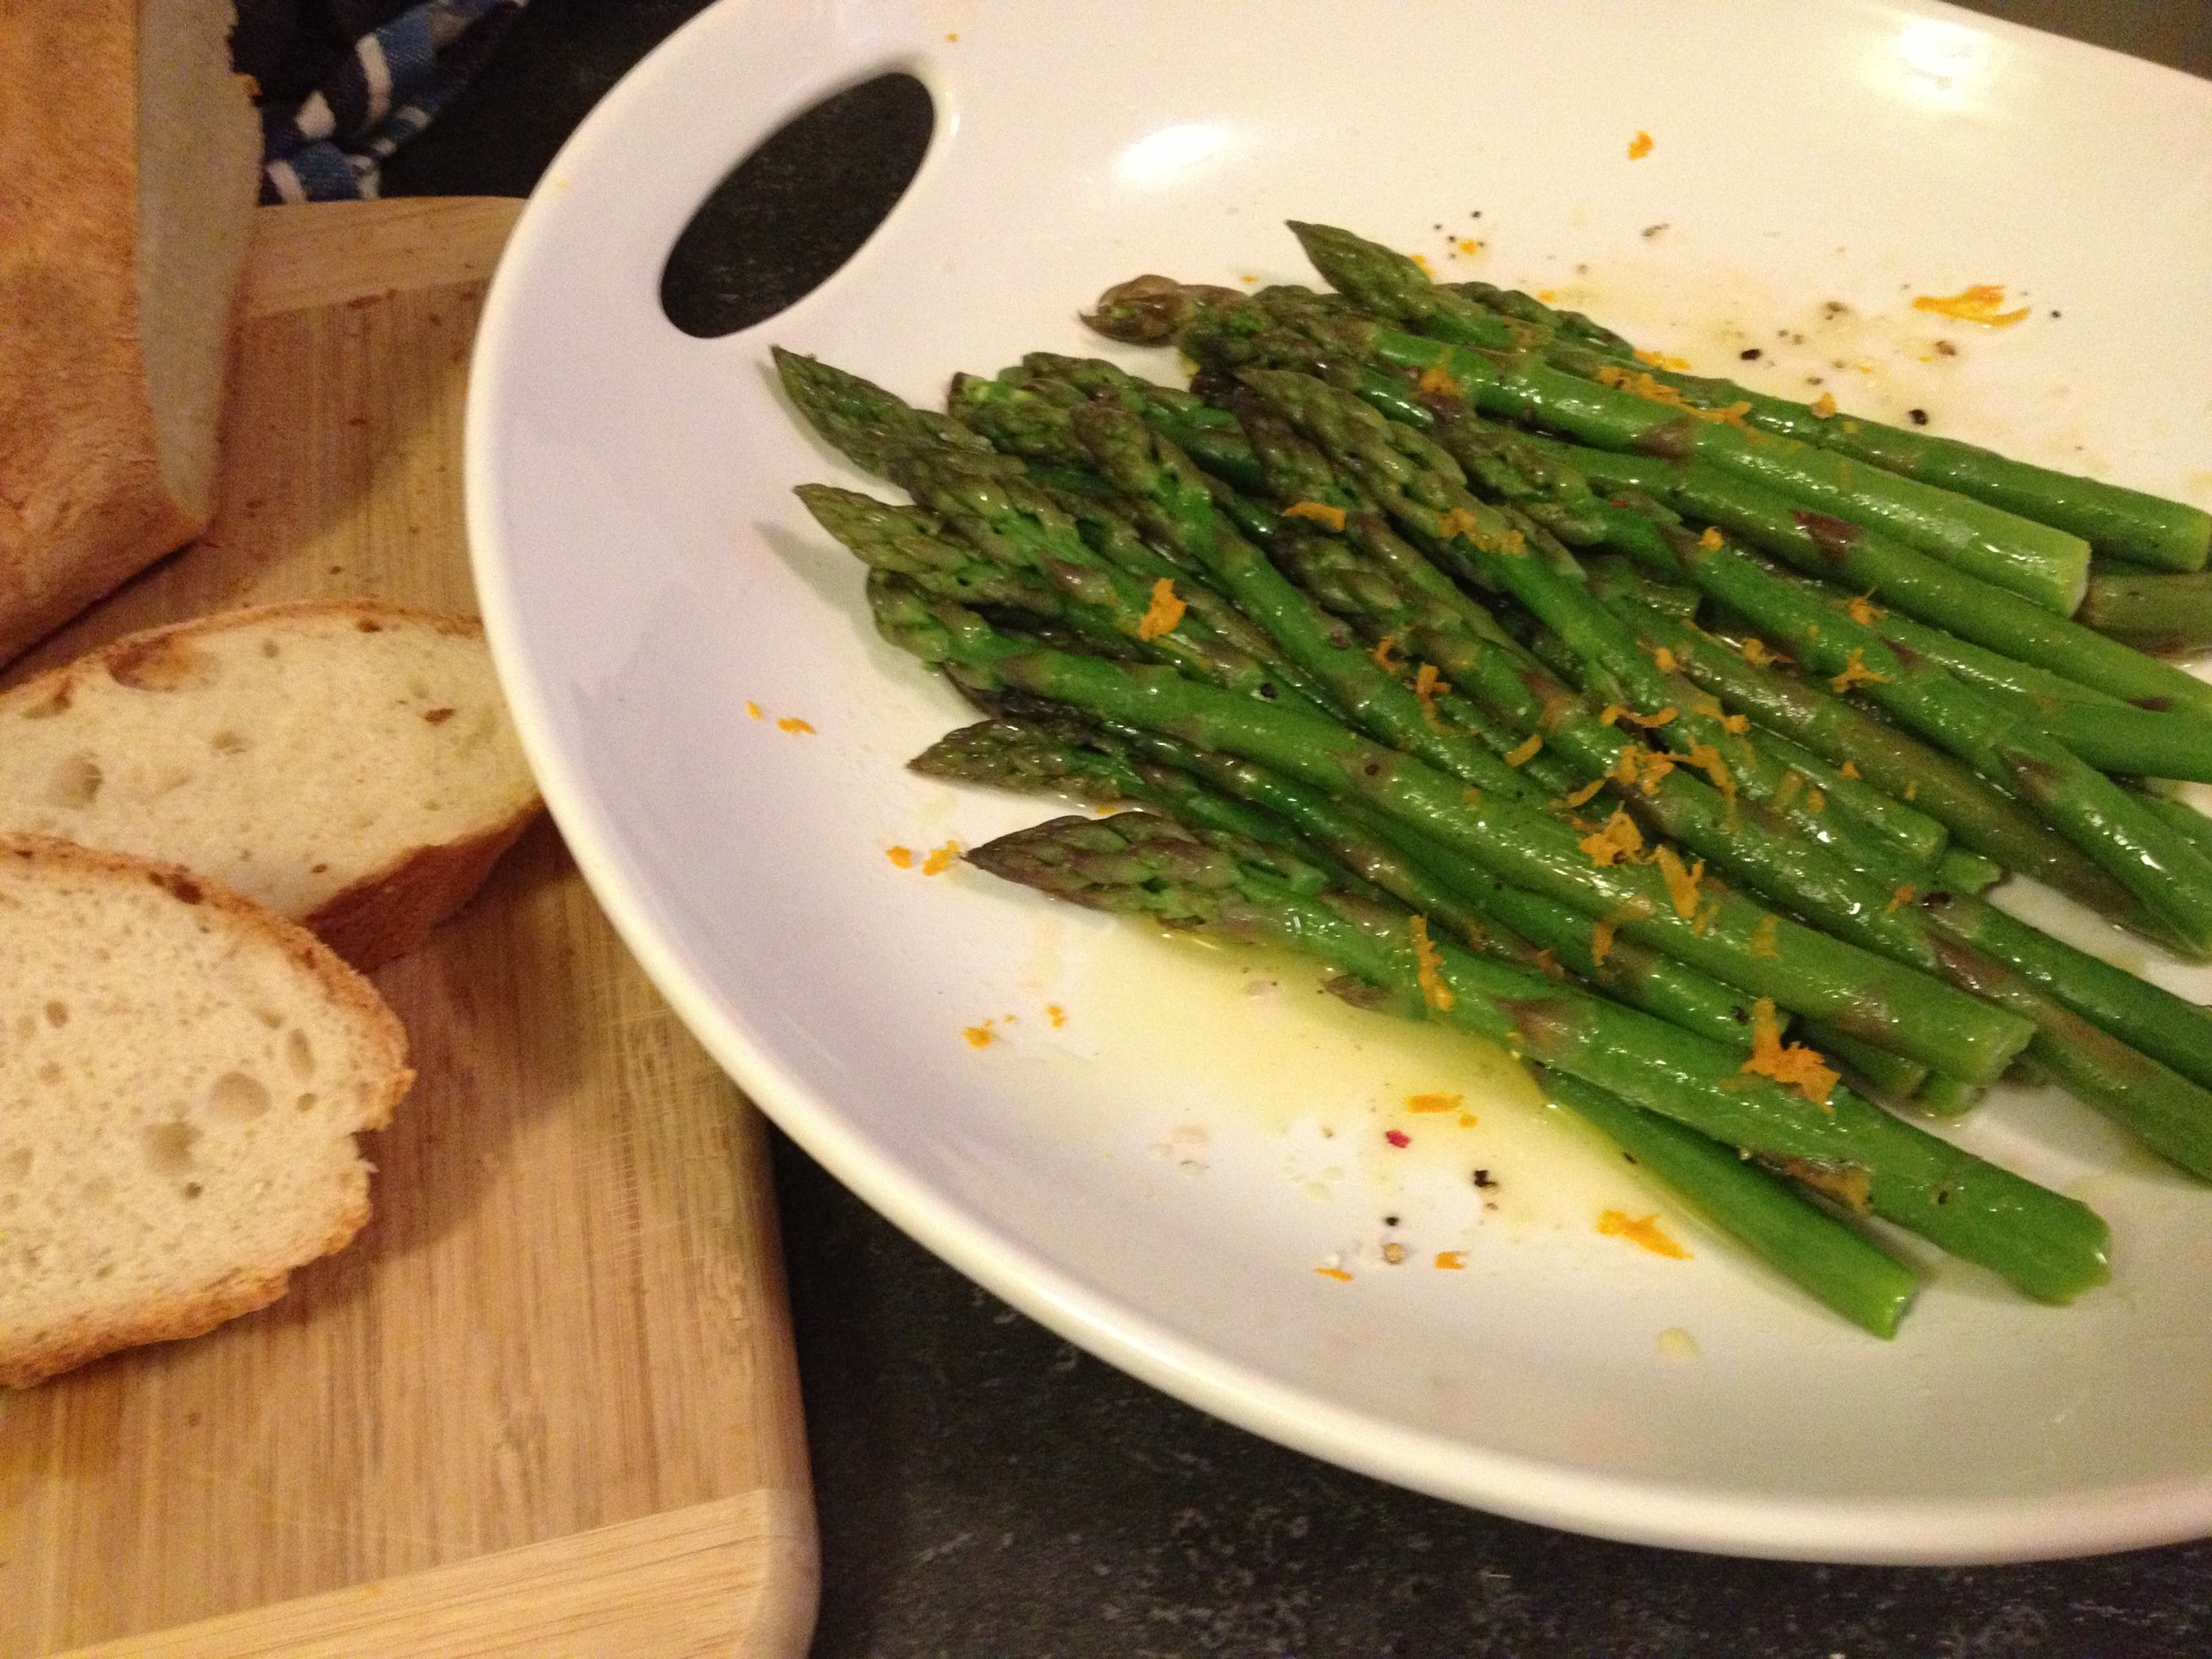 Asparagus with a Lemon Vinaigrette